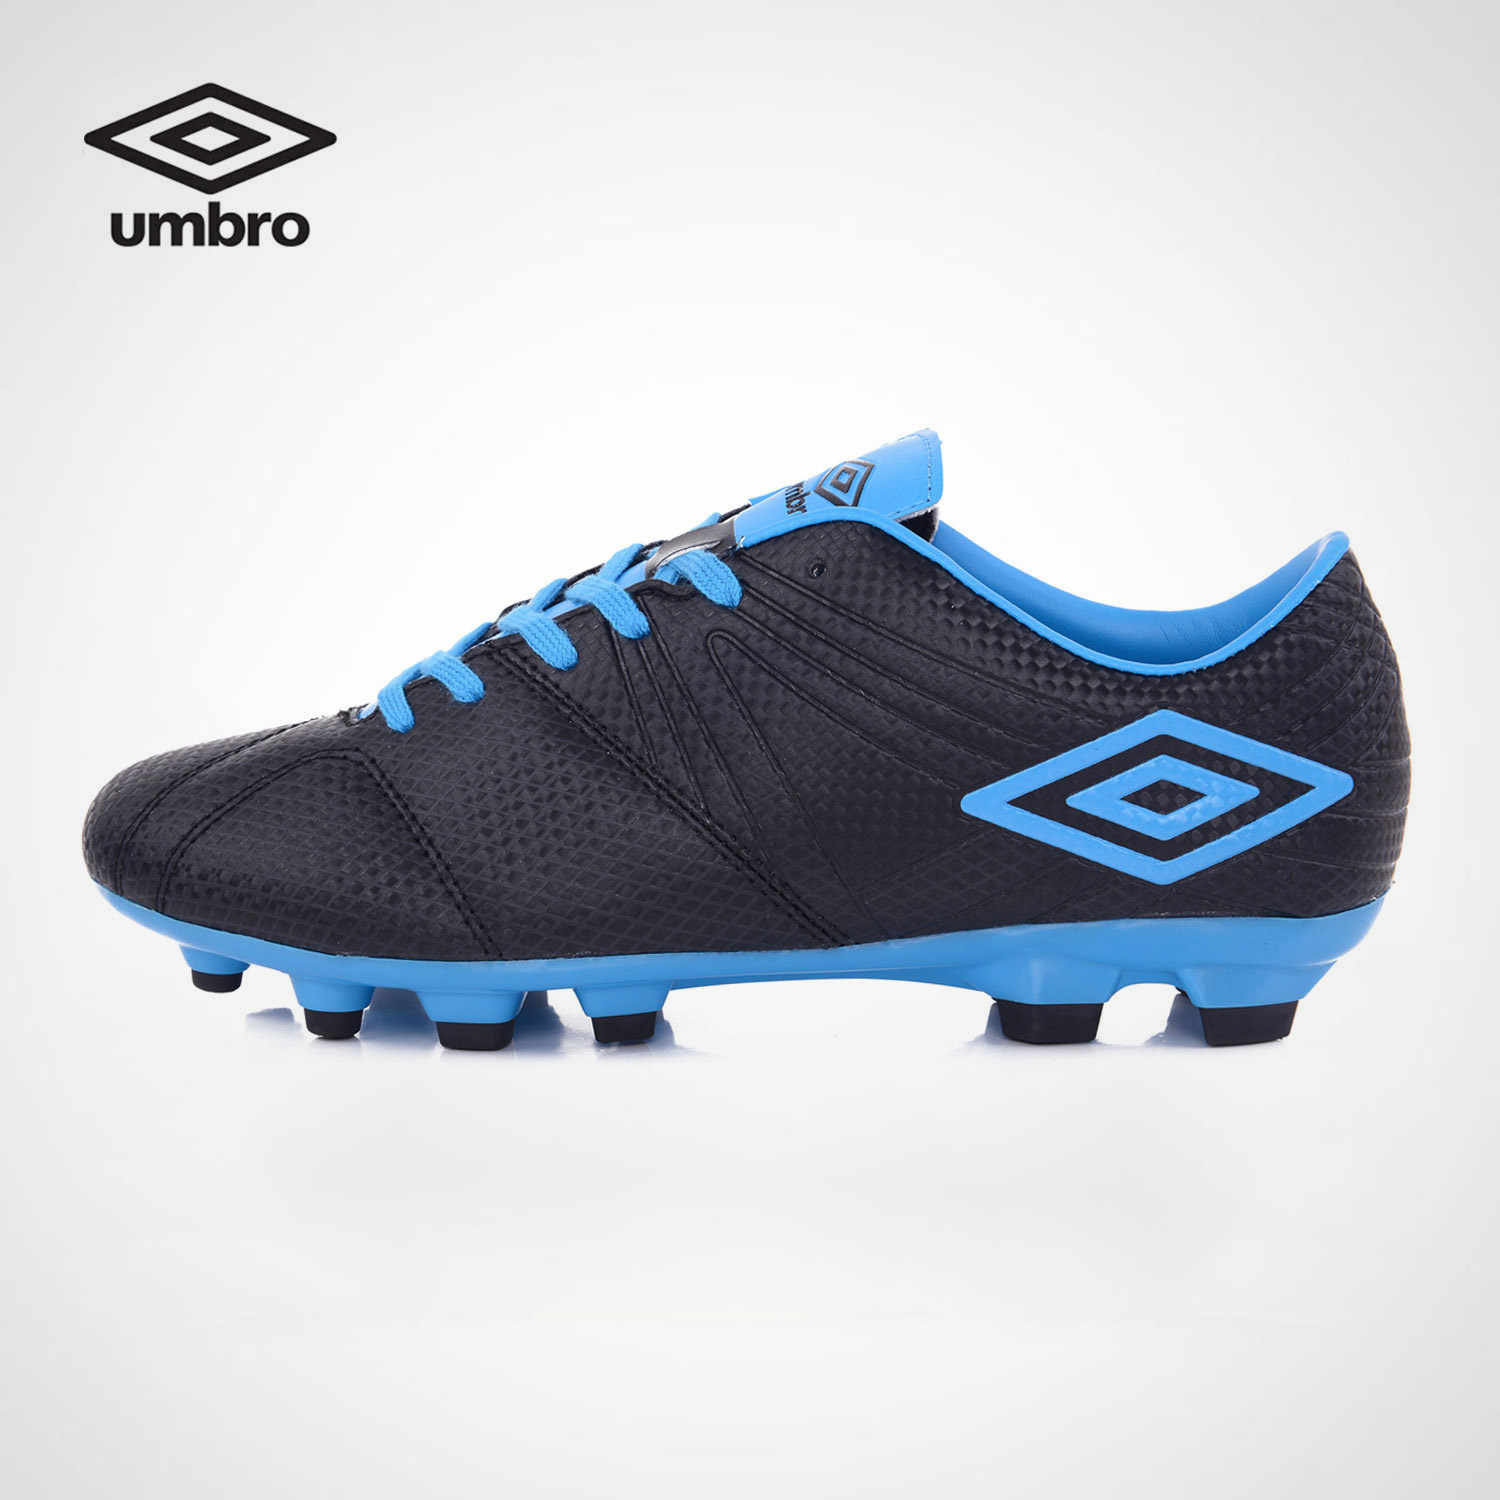 Umbro 2017 New Men s Accerator Football Shoes Arrival TF Men s Soccer Shoes  Football Sneakers Uss7711 82e5aa0da